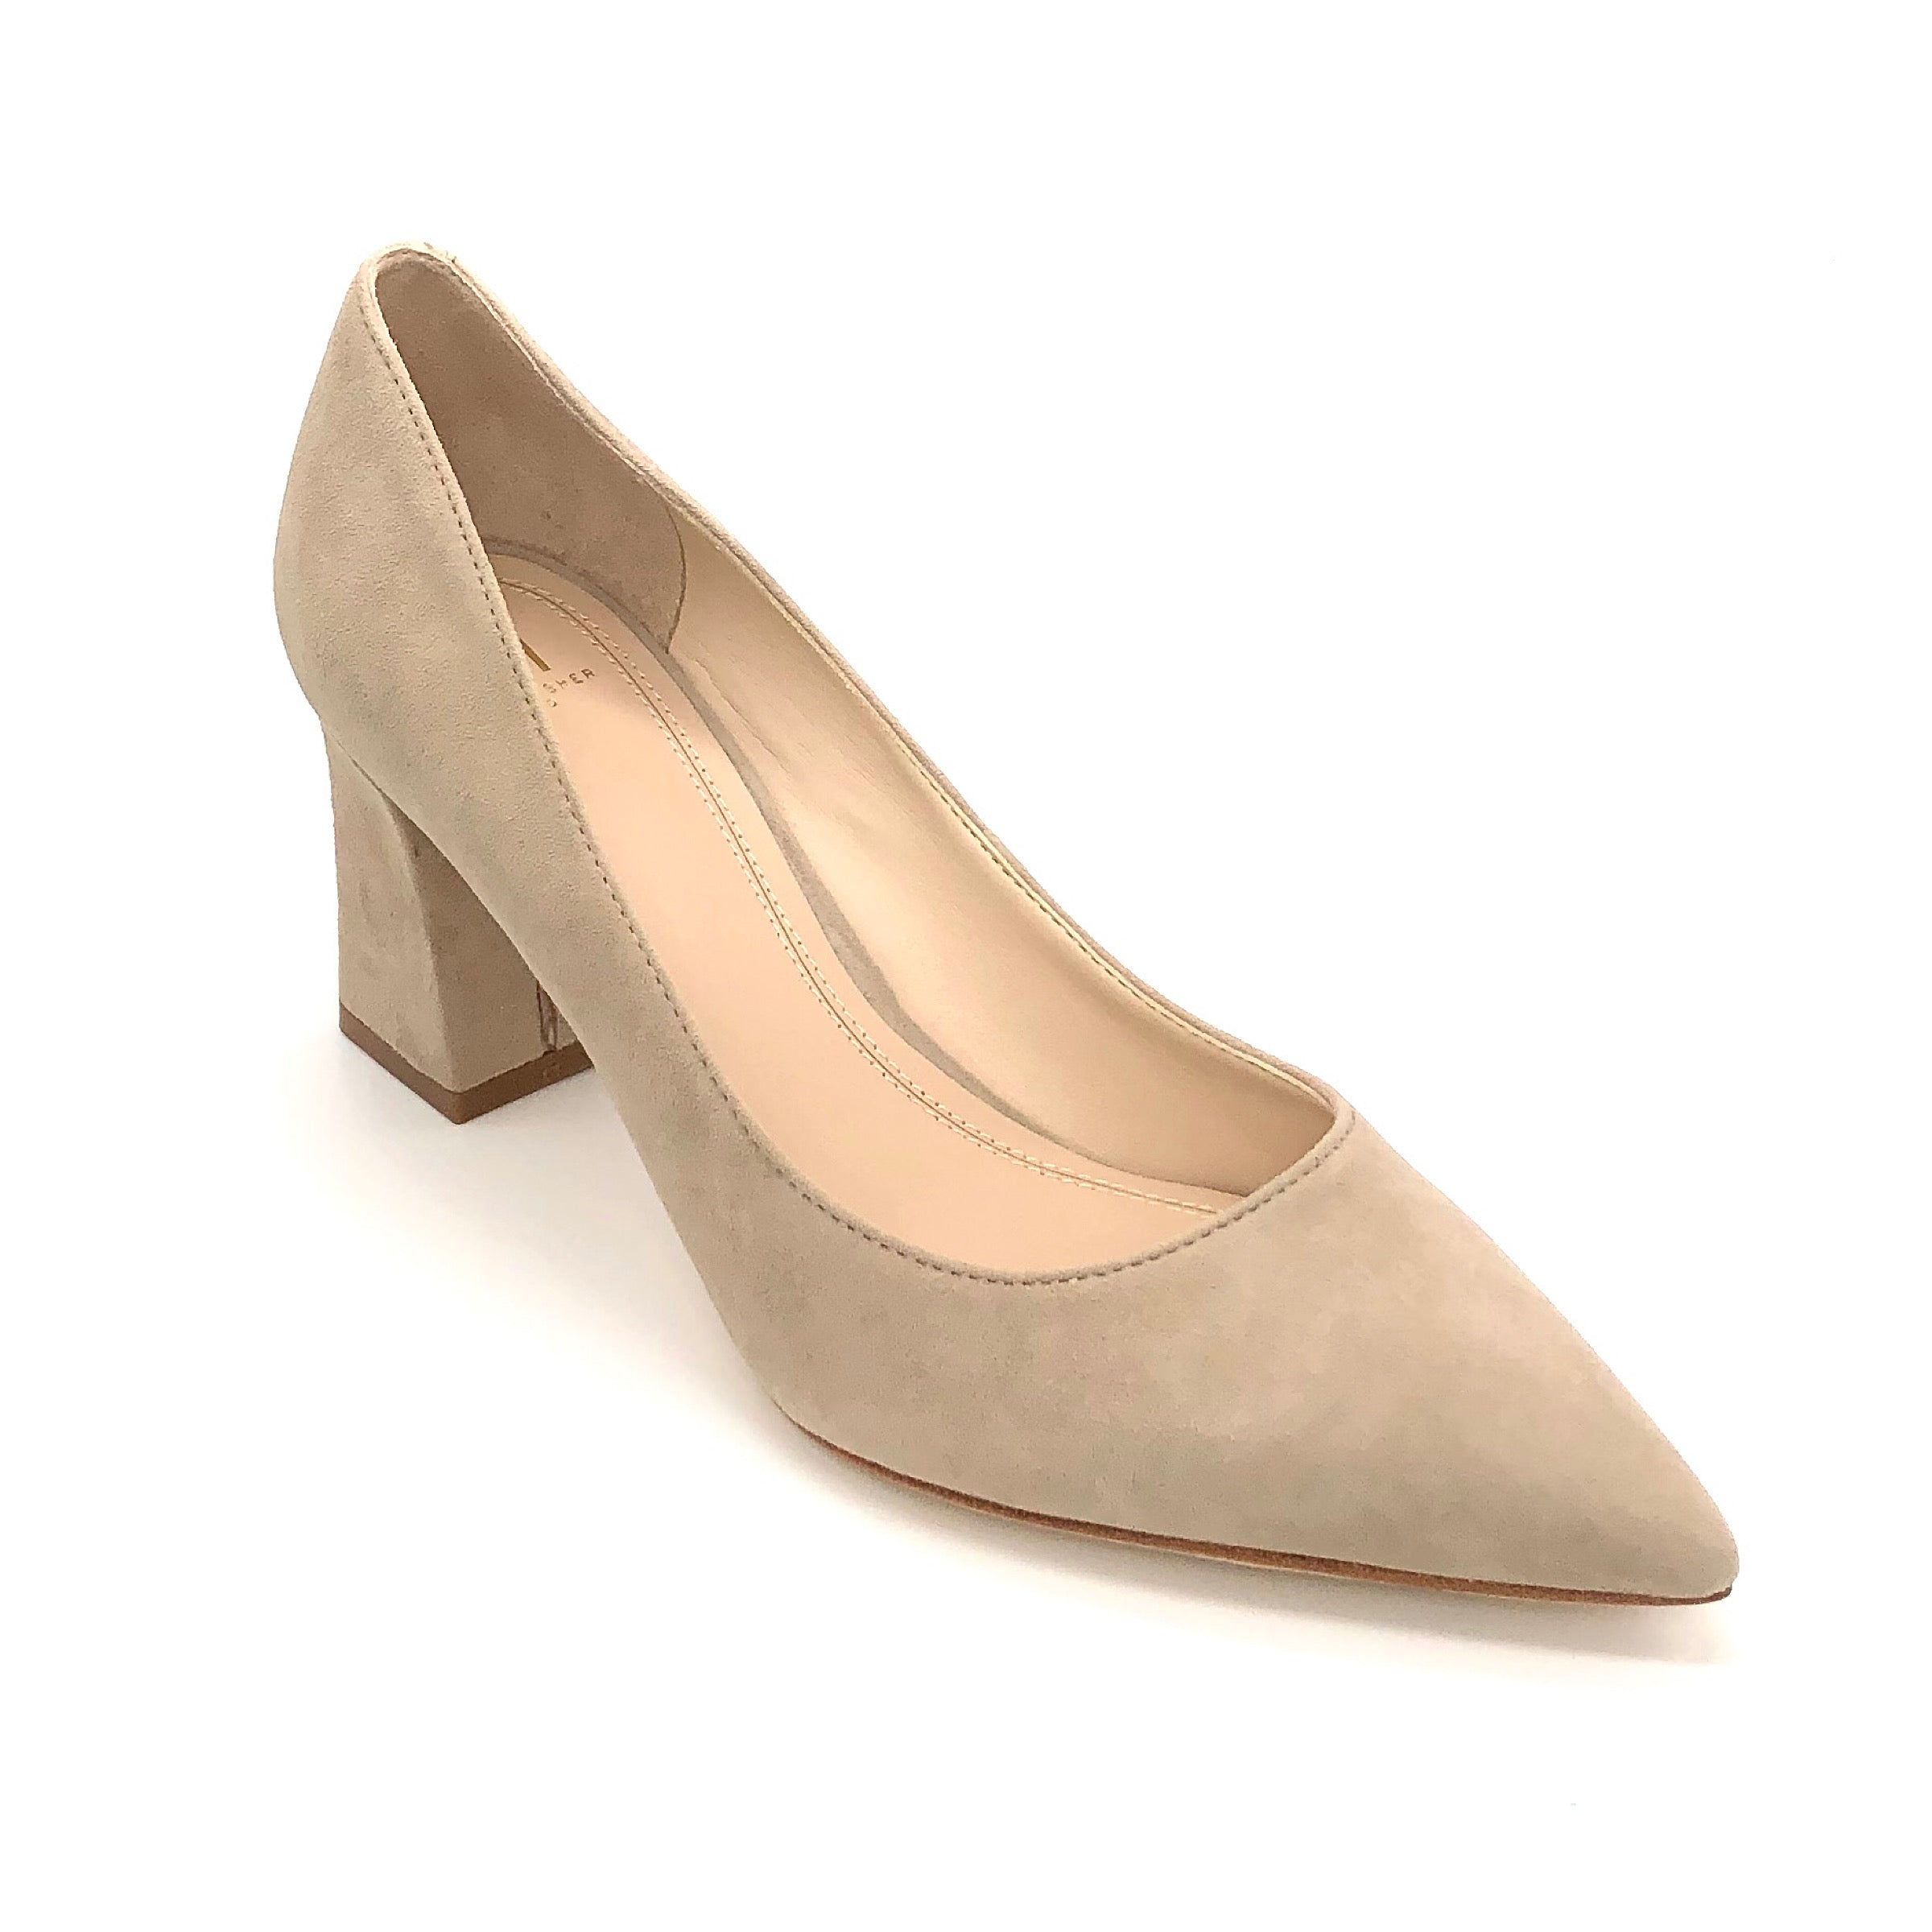 The Block Heel Pointed Pump in Natural